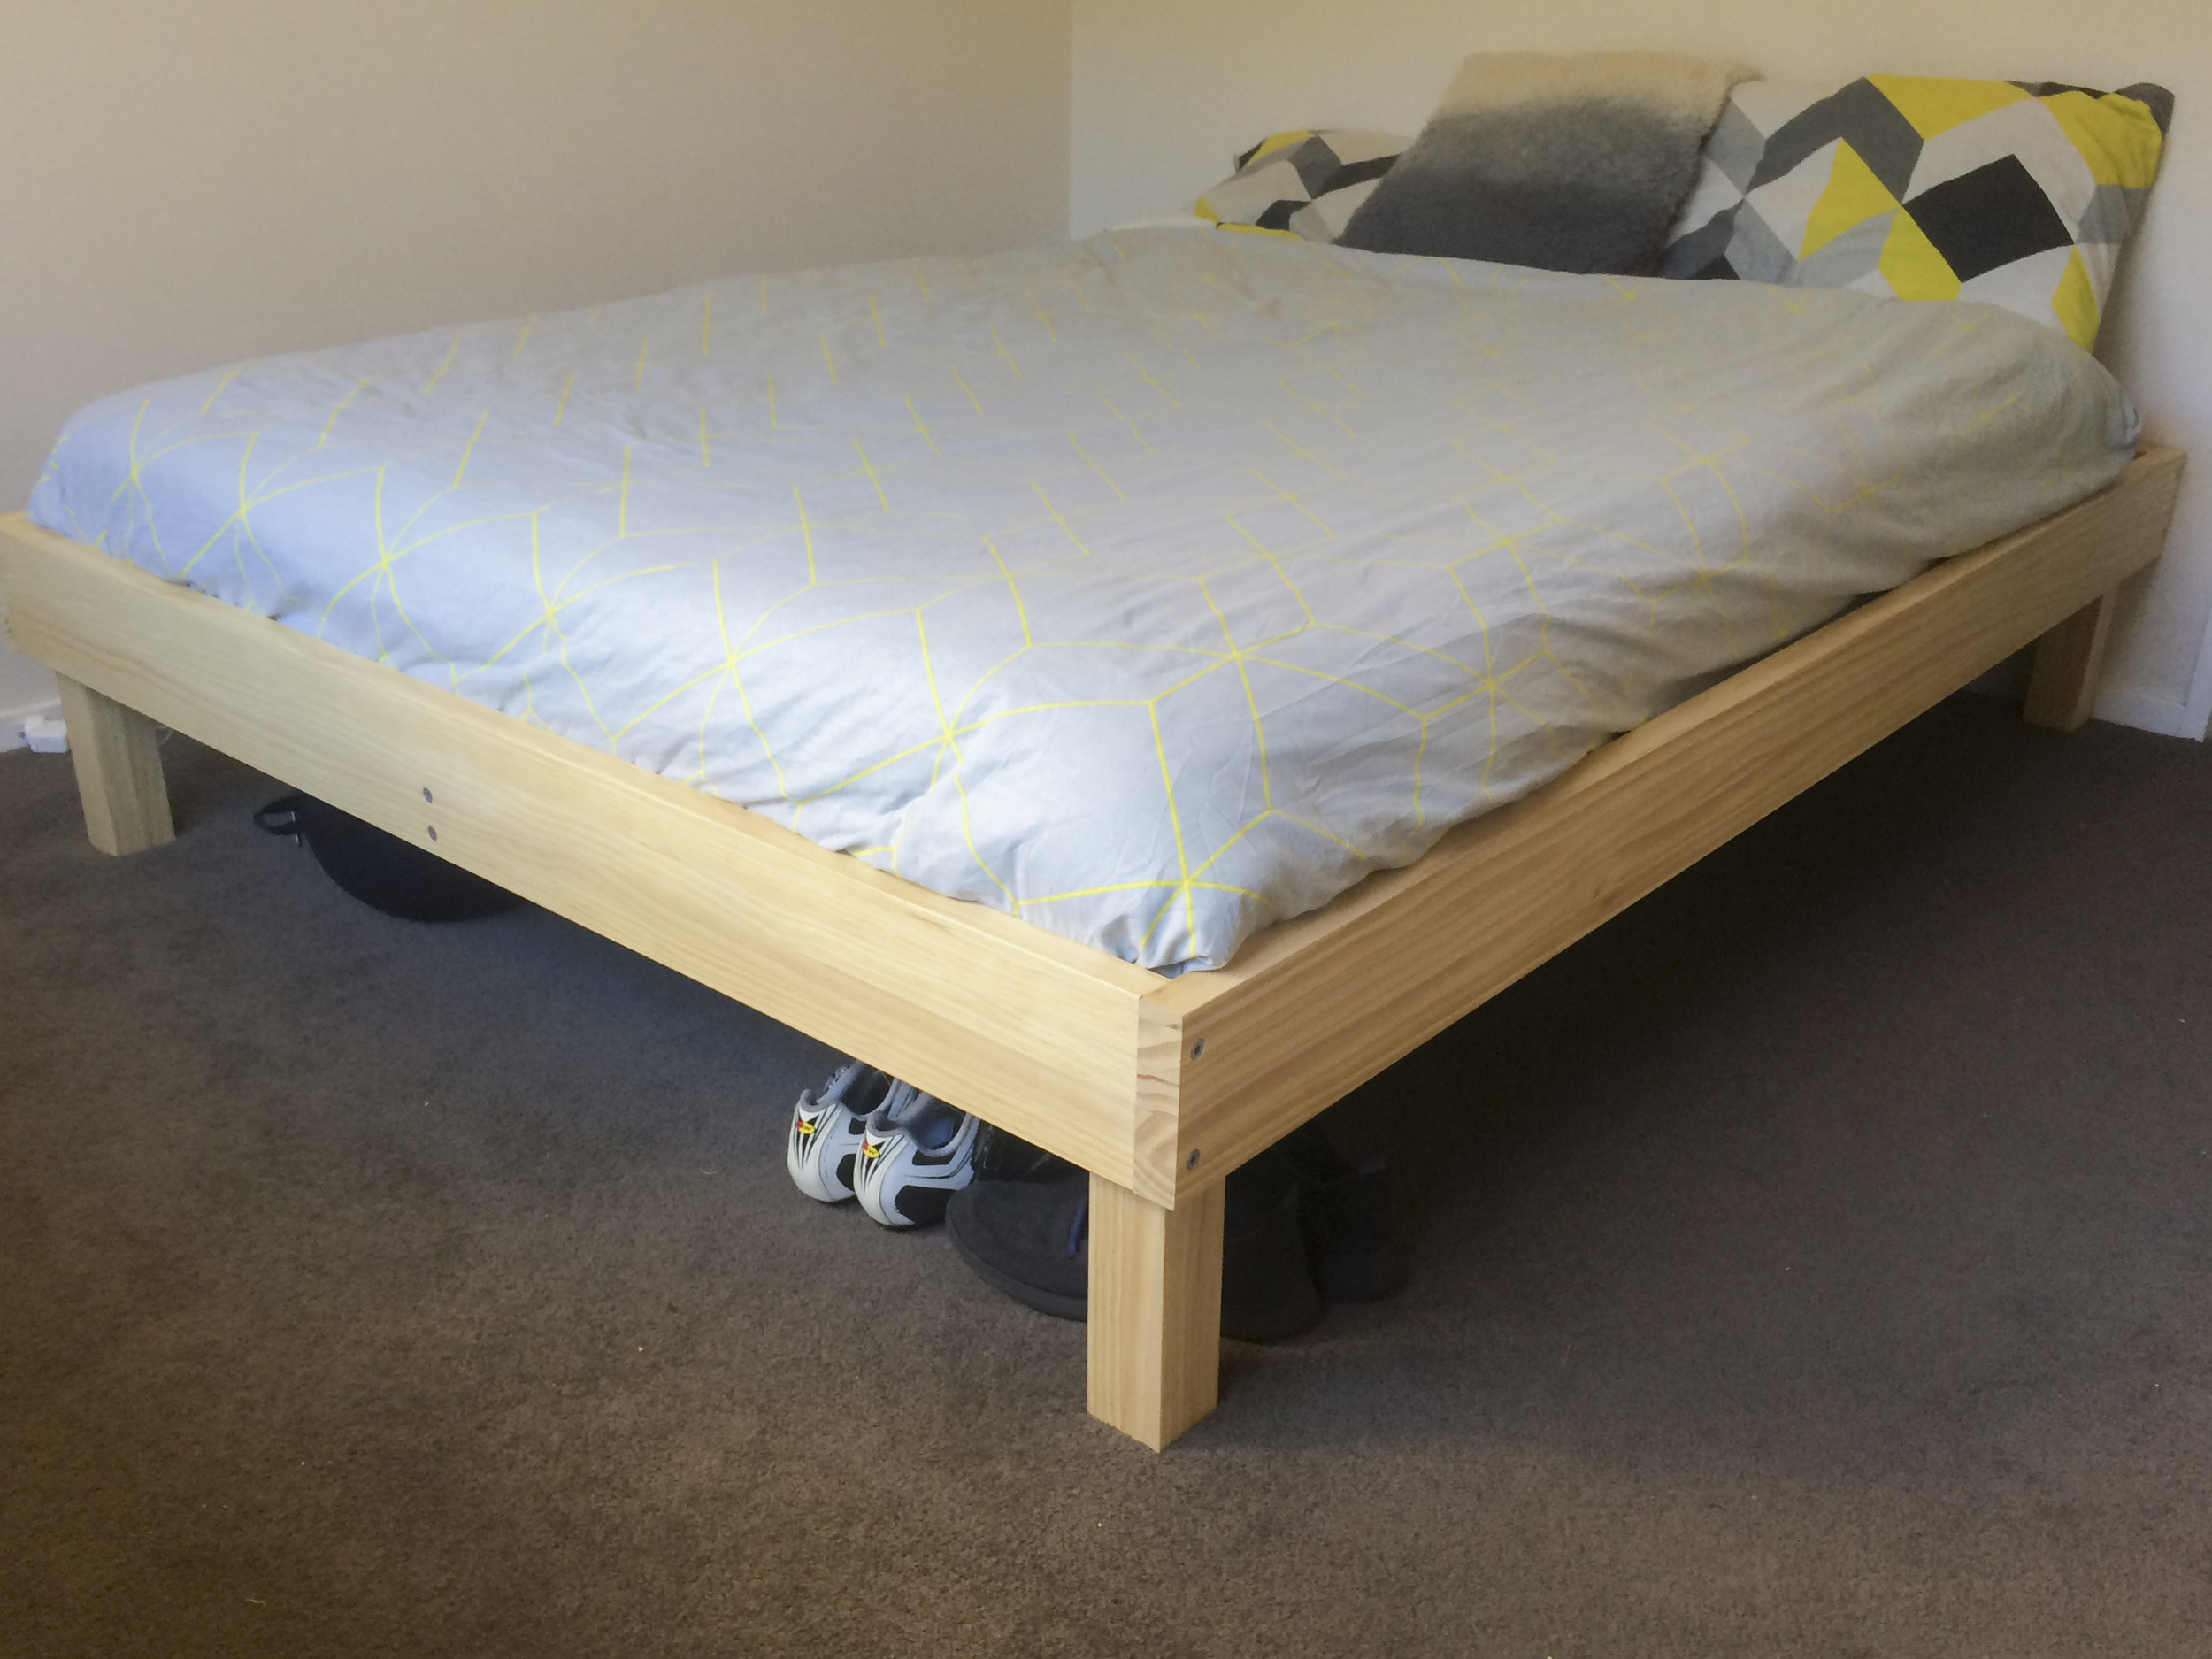 The bed all set up